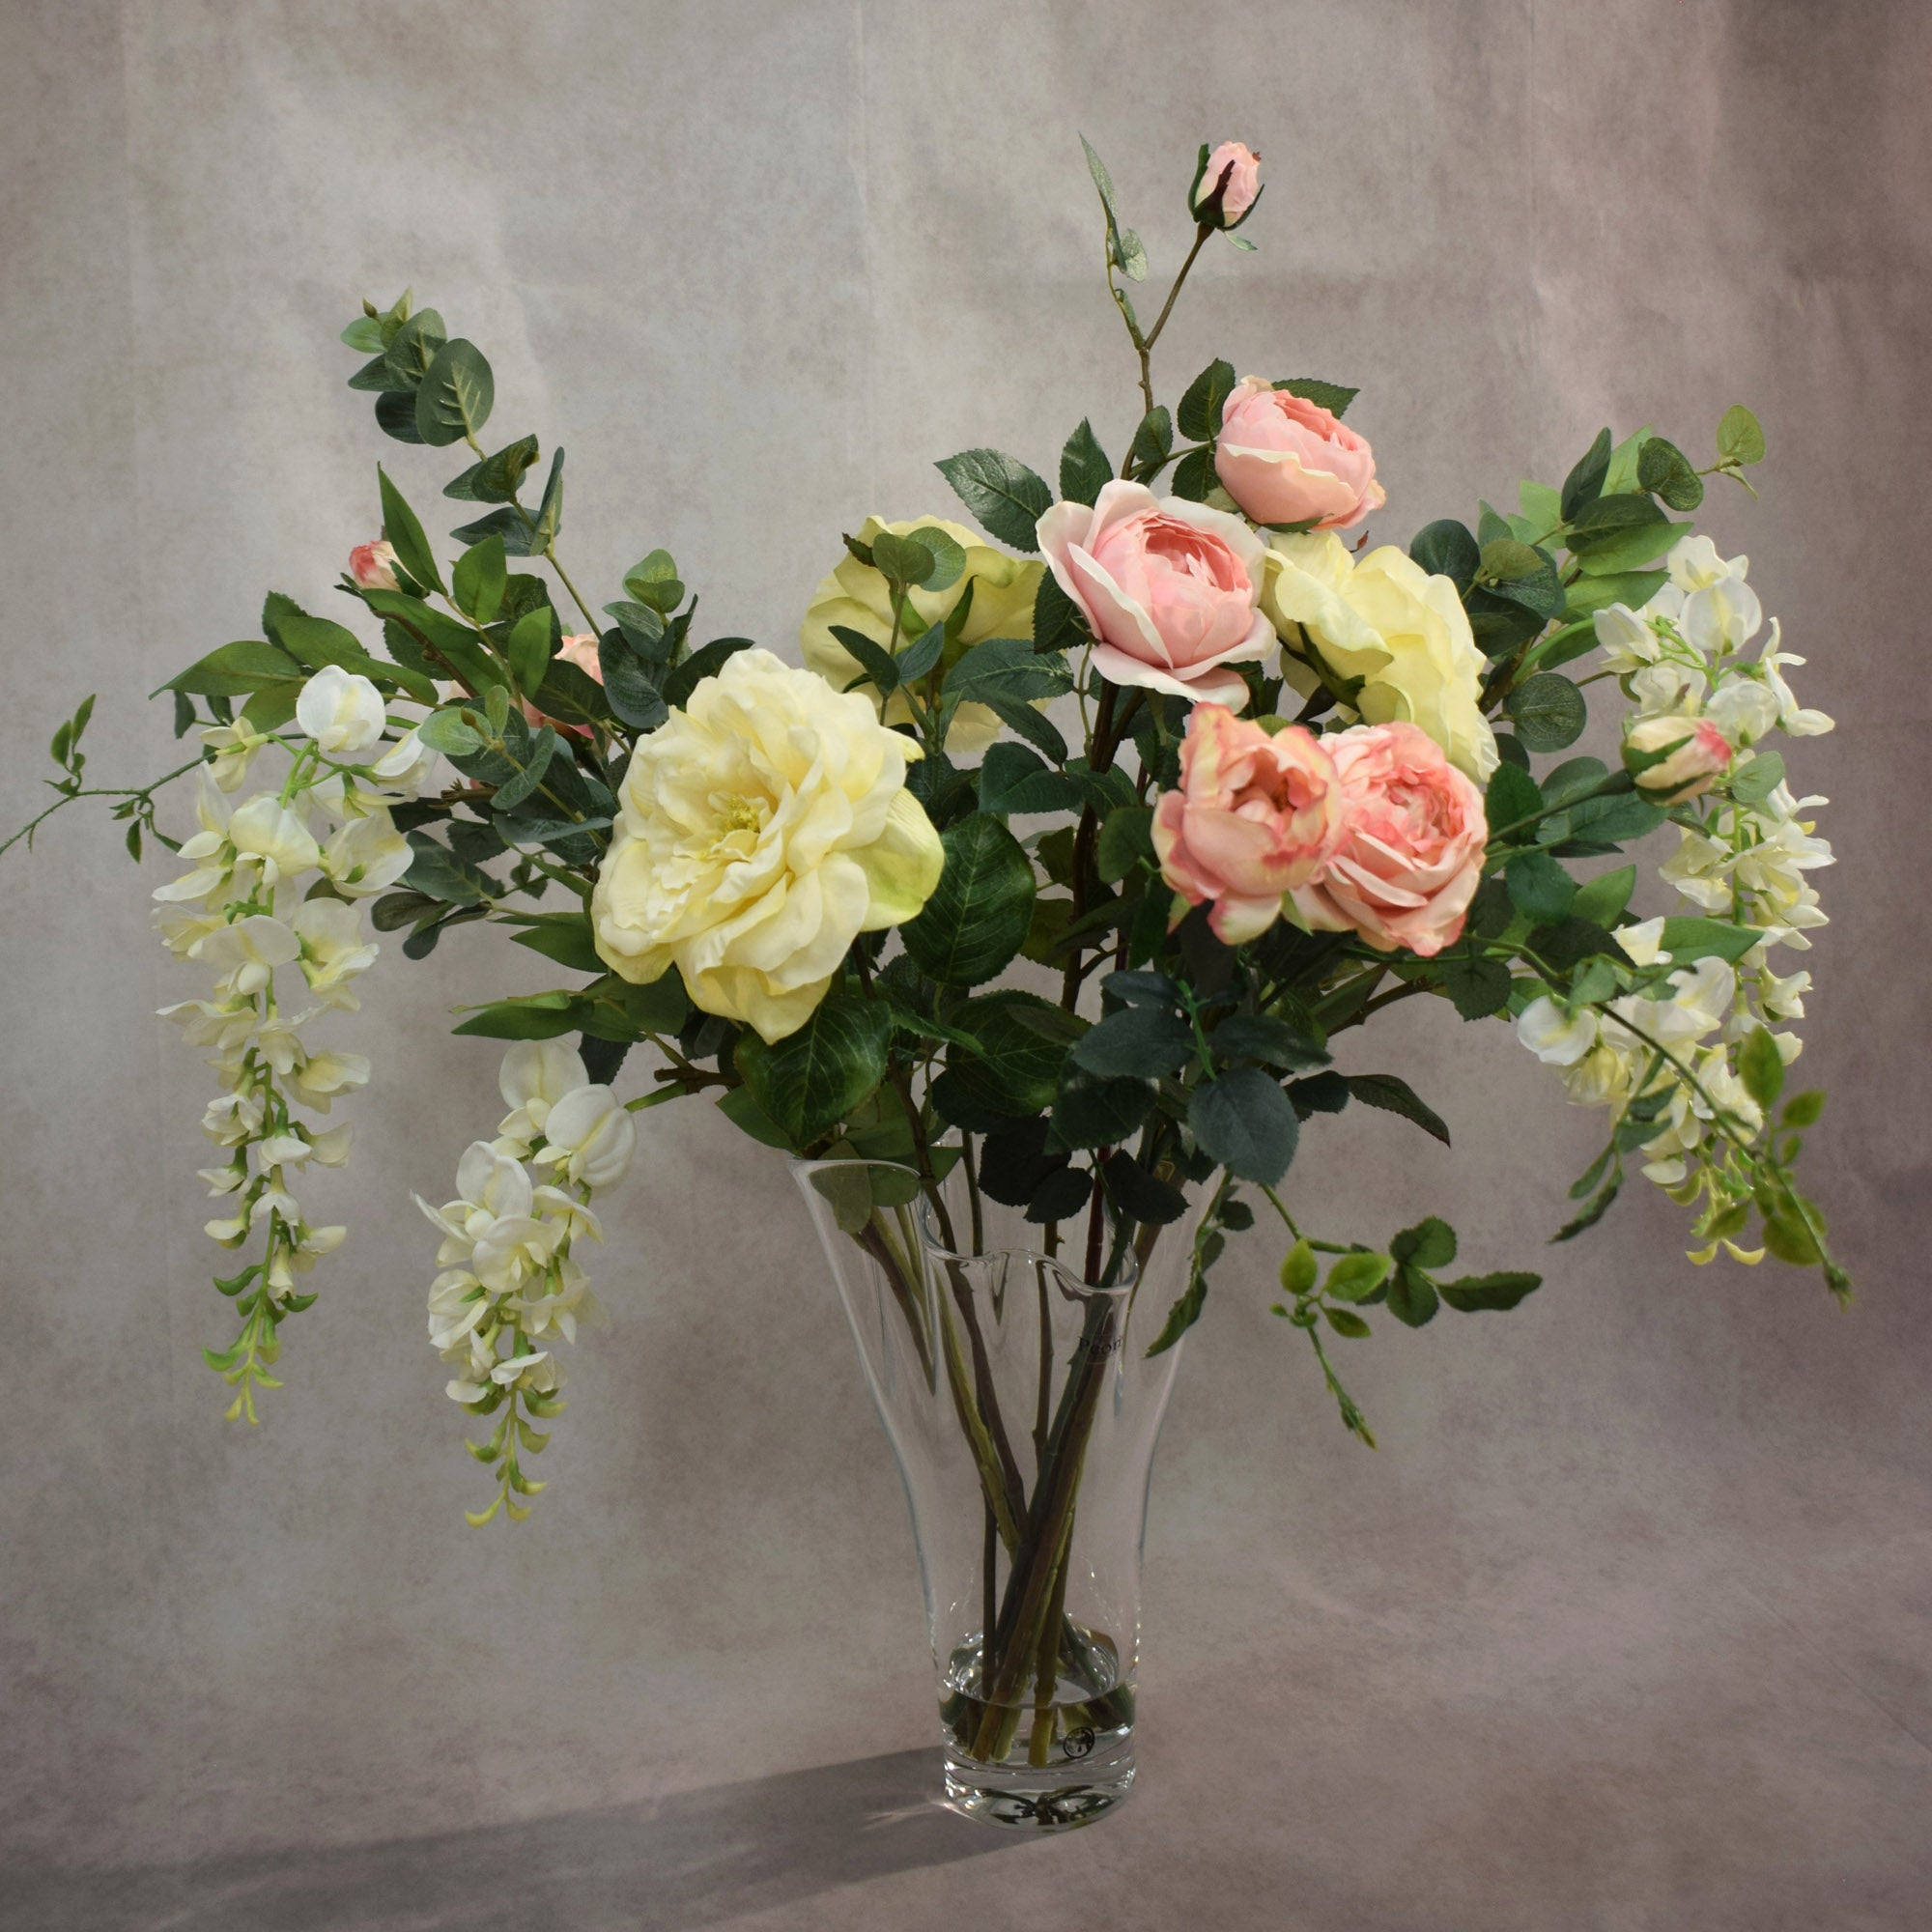 Dorma Rose and Wisteria in Handkerchief Vase Cream (Natural)